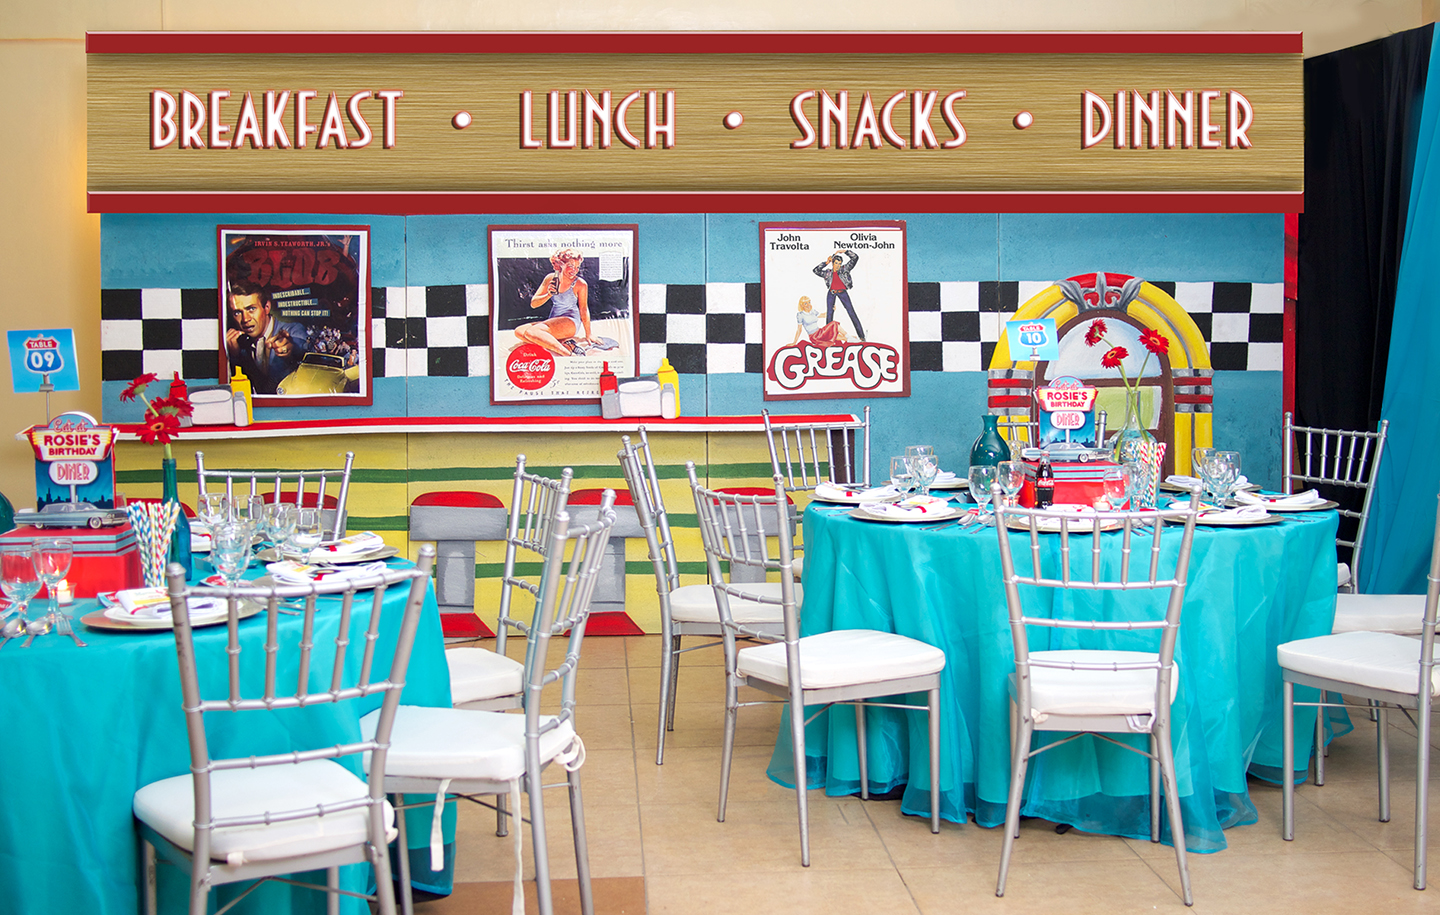 '50s Diner themed party setup